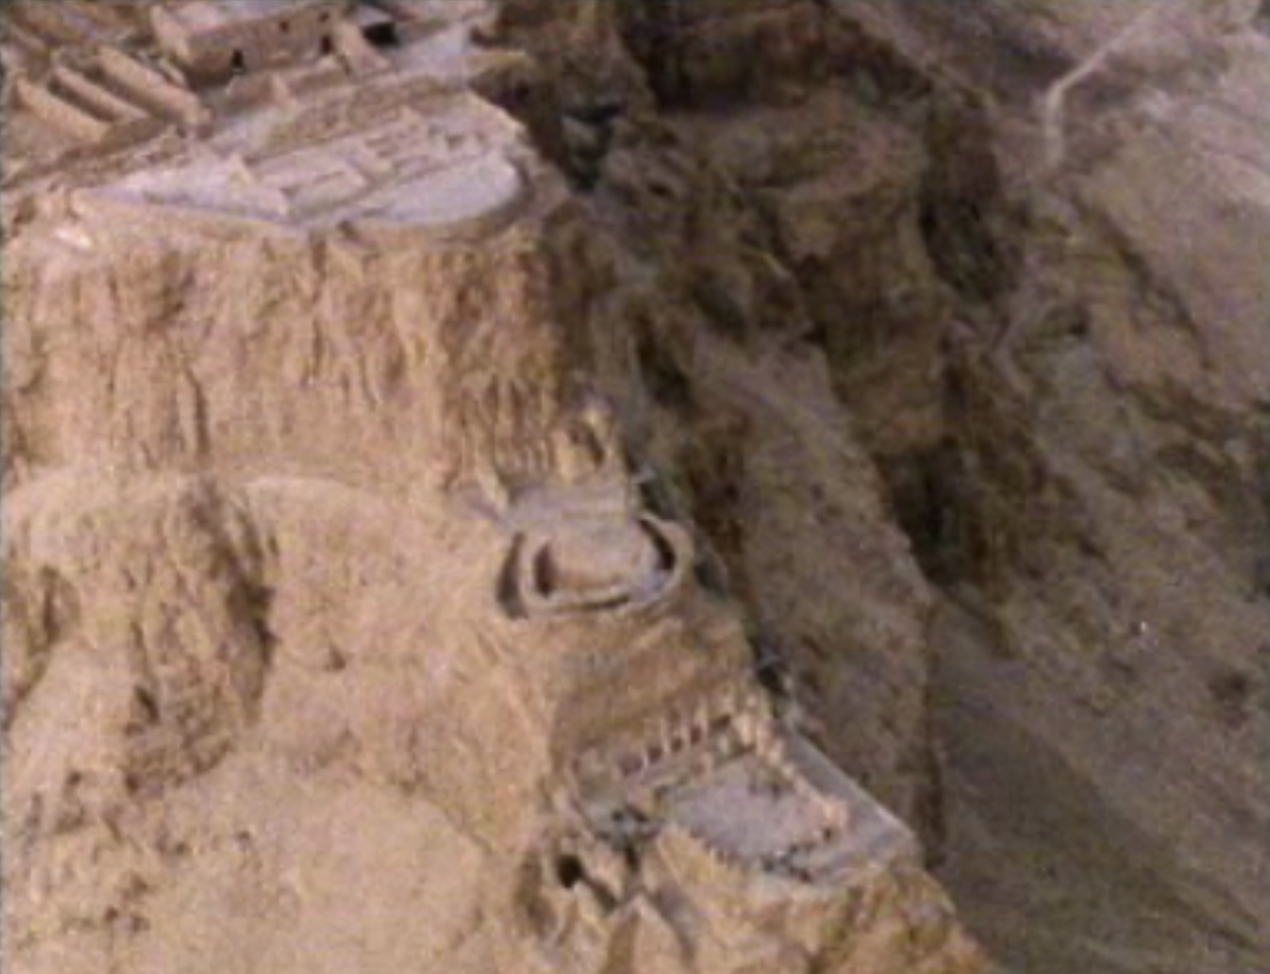 Aerial shots of the fortress of Masada, the site of Jewish resistance in the revolt against Roman rule 66-74CE. Masada had been built by King Herod in the first century CE on a plateau overlooking the Dead Sea and is now a UNESCO World Heritage site. The Roman siege of Masada and the last stand of the Sicarii defenders was described by the Jewish historian Josephus. The course reviewed the written and archaeological evidence relating to his account.